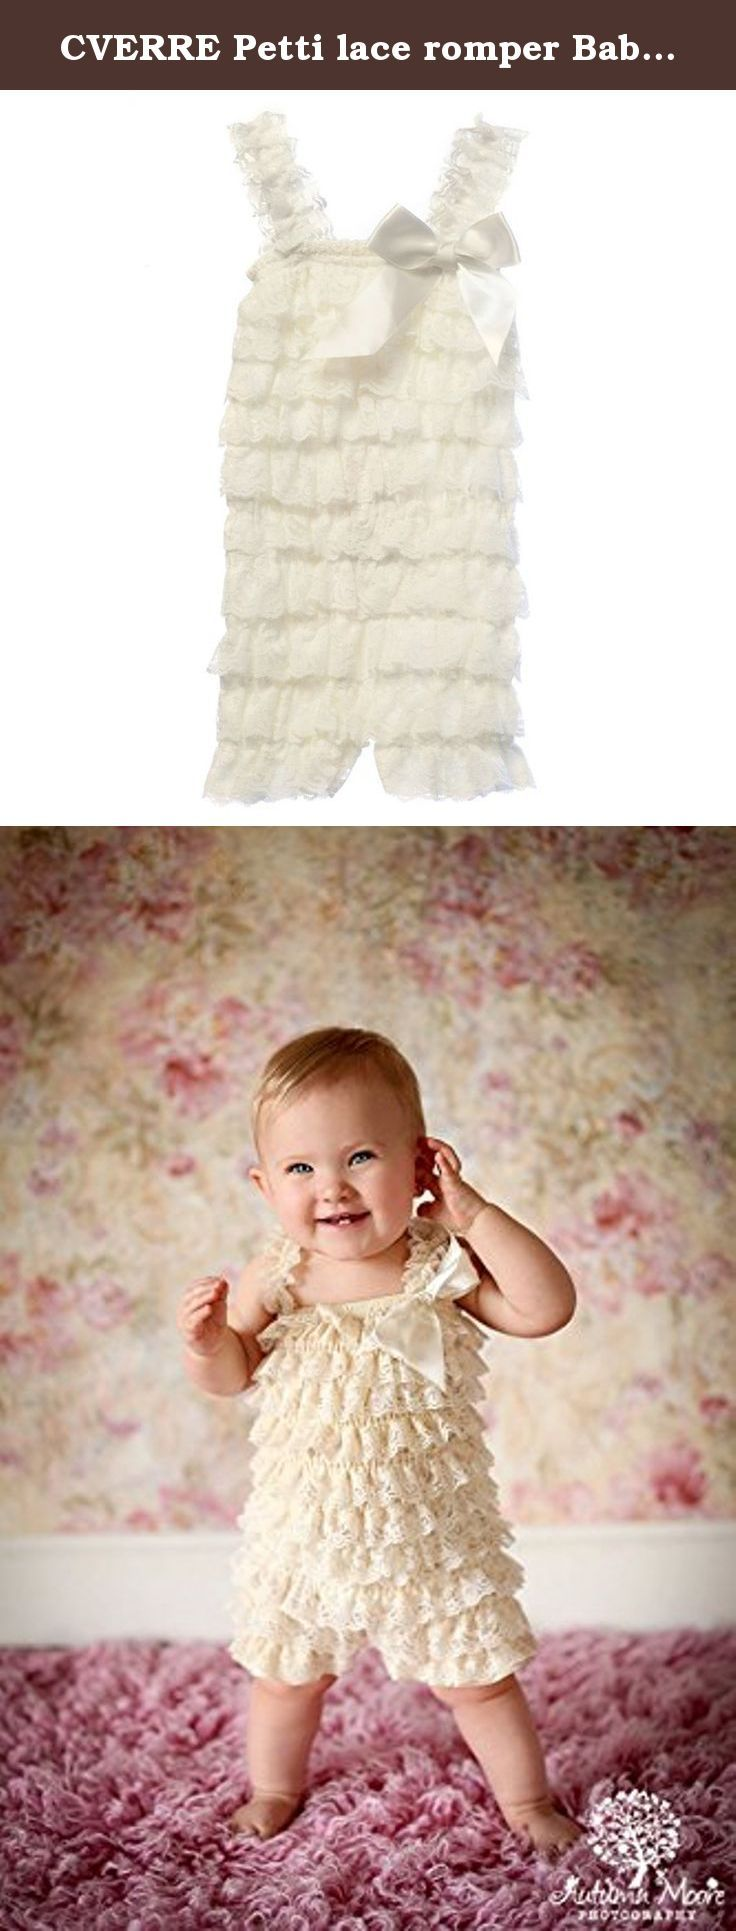 CVERRE Petti lace romper Baby Toddler Girls Layered Lace Ruffle Petti Romper (L ( 12 to 18 months ), White). CVERRE Petti lace romper Baby Toddler Girls Layered Lace Ruffle Petti Romper Sizes: Small fits 0-6 months Medium fits 6-12 months Large fits 12 -18 months.